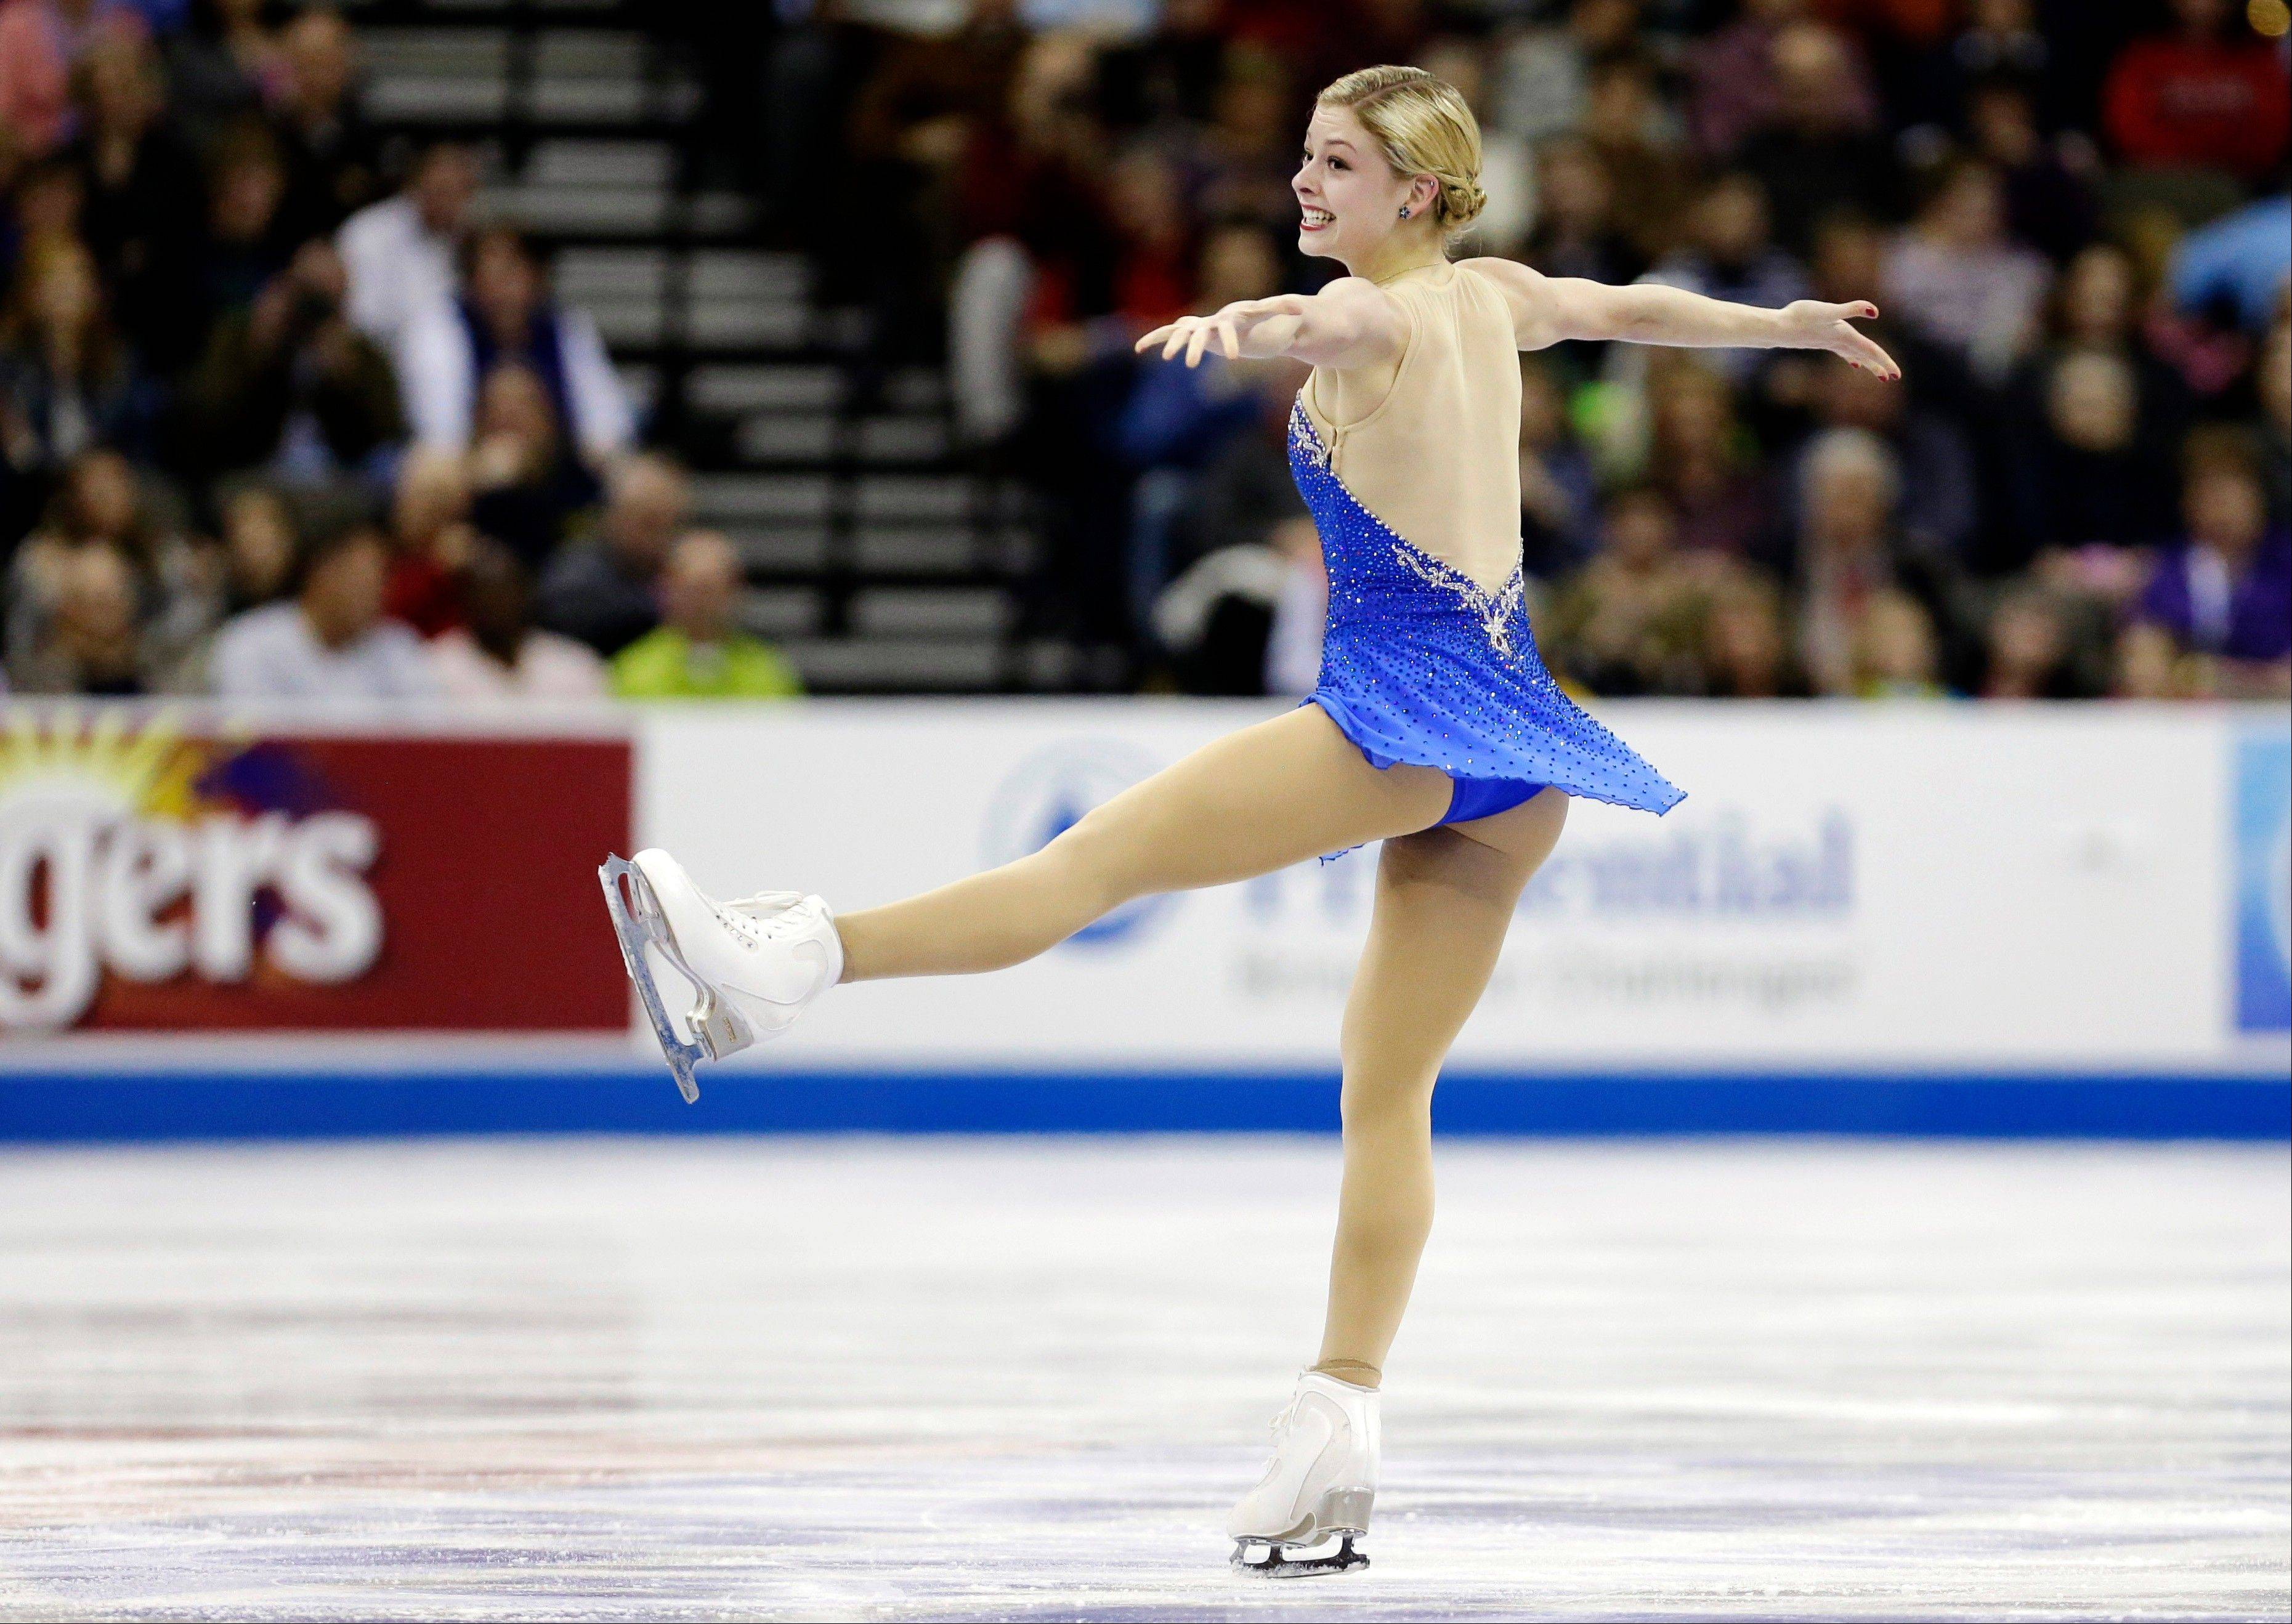 Gracie Gold captured the senior ladies free skate program at the U.S. figure skating championships, lifting her from ninth place entering the competion to a stunning second place finish.